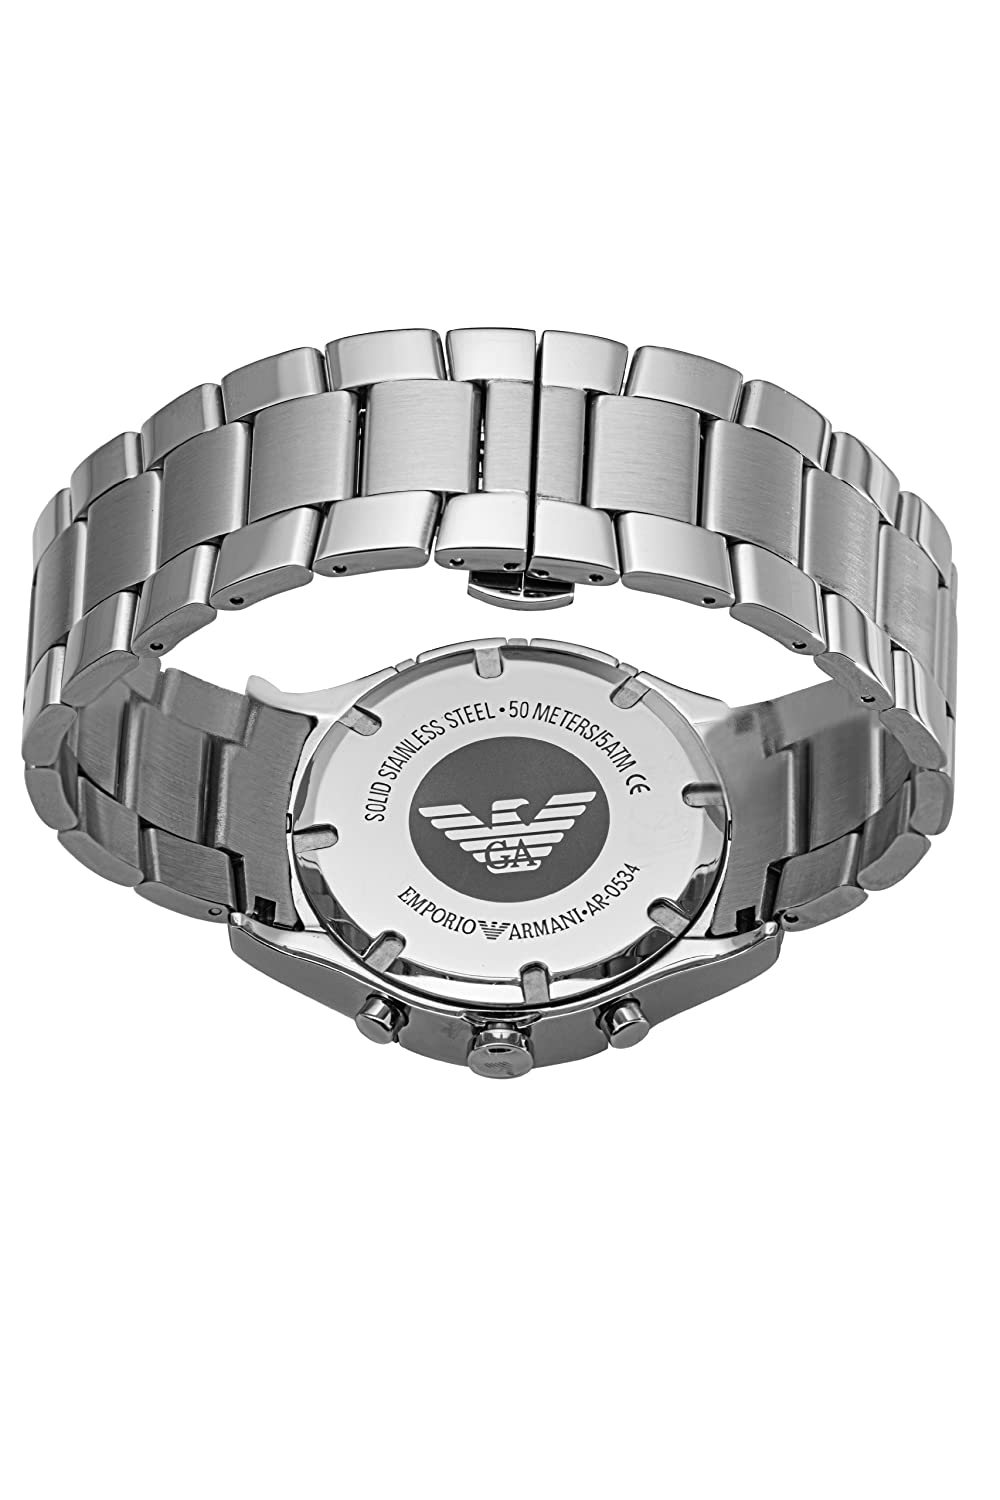 Amazon.com: Emporio Armani Mens watches AR0534 - 2: Emporio Armani: Watches